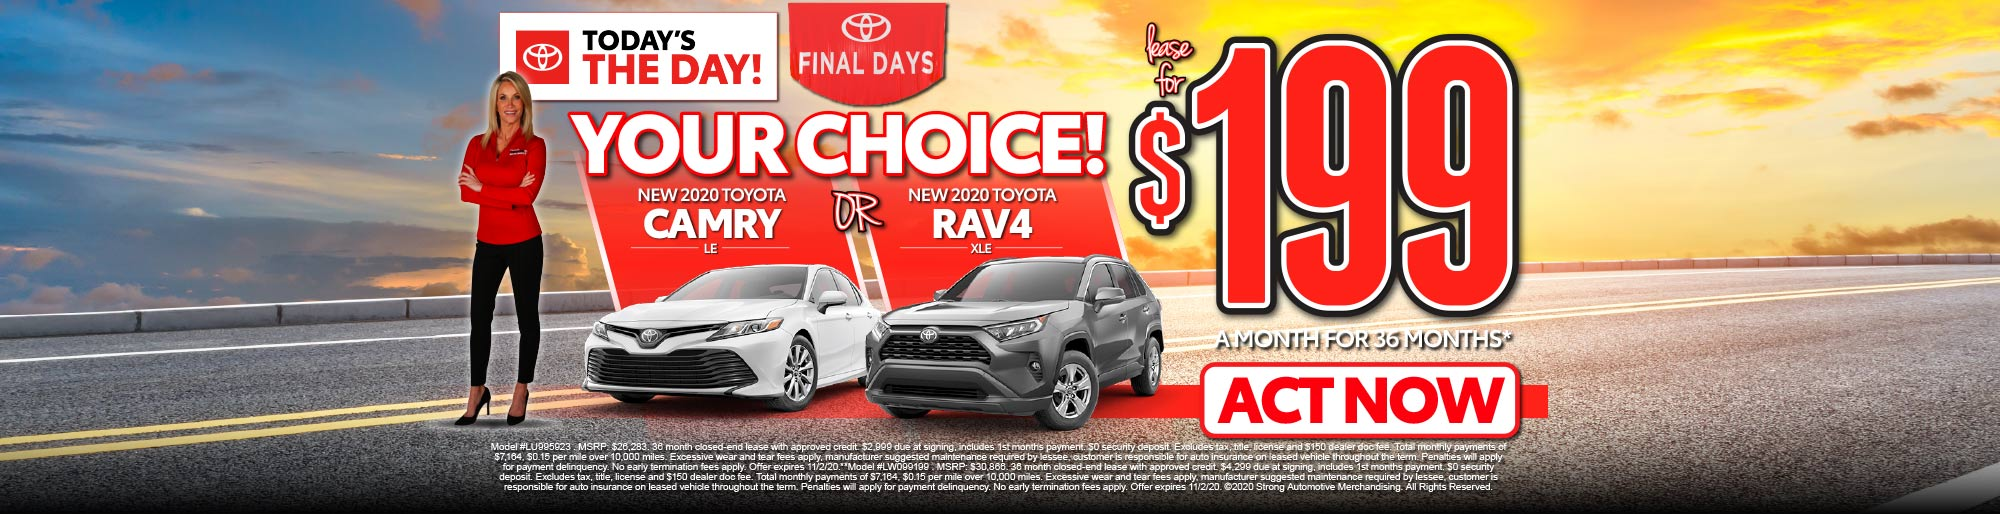 your choice! Camry or Rav4 $199/MO** - ACT NOW